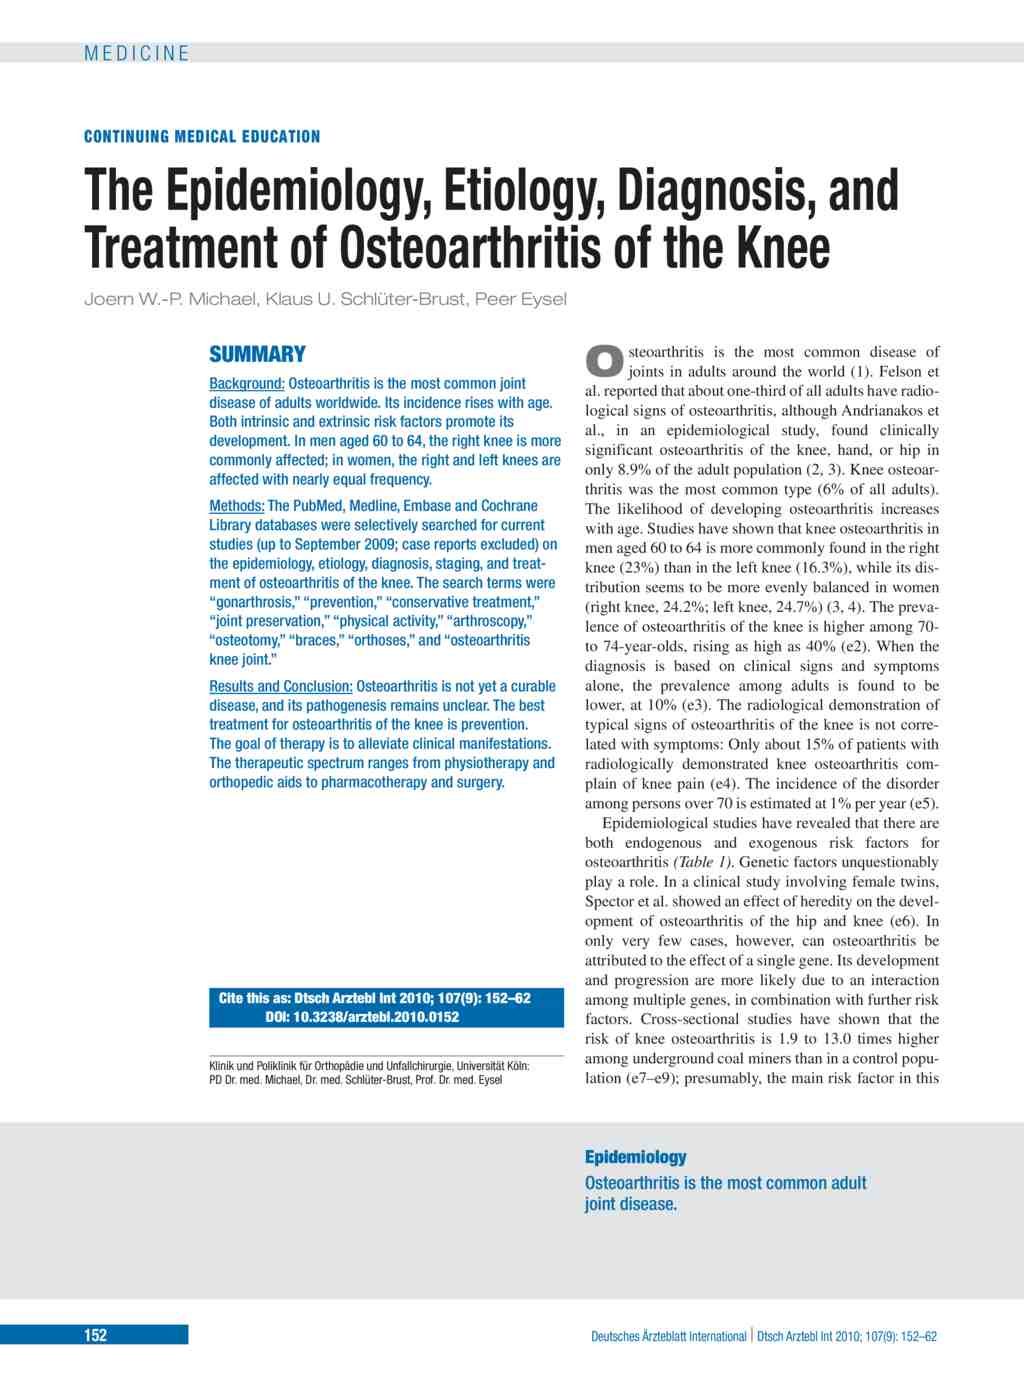 Osteoarthritis prevalence and modifiable factors: a population study